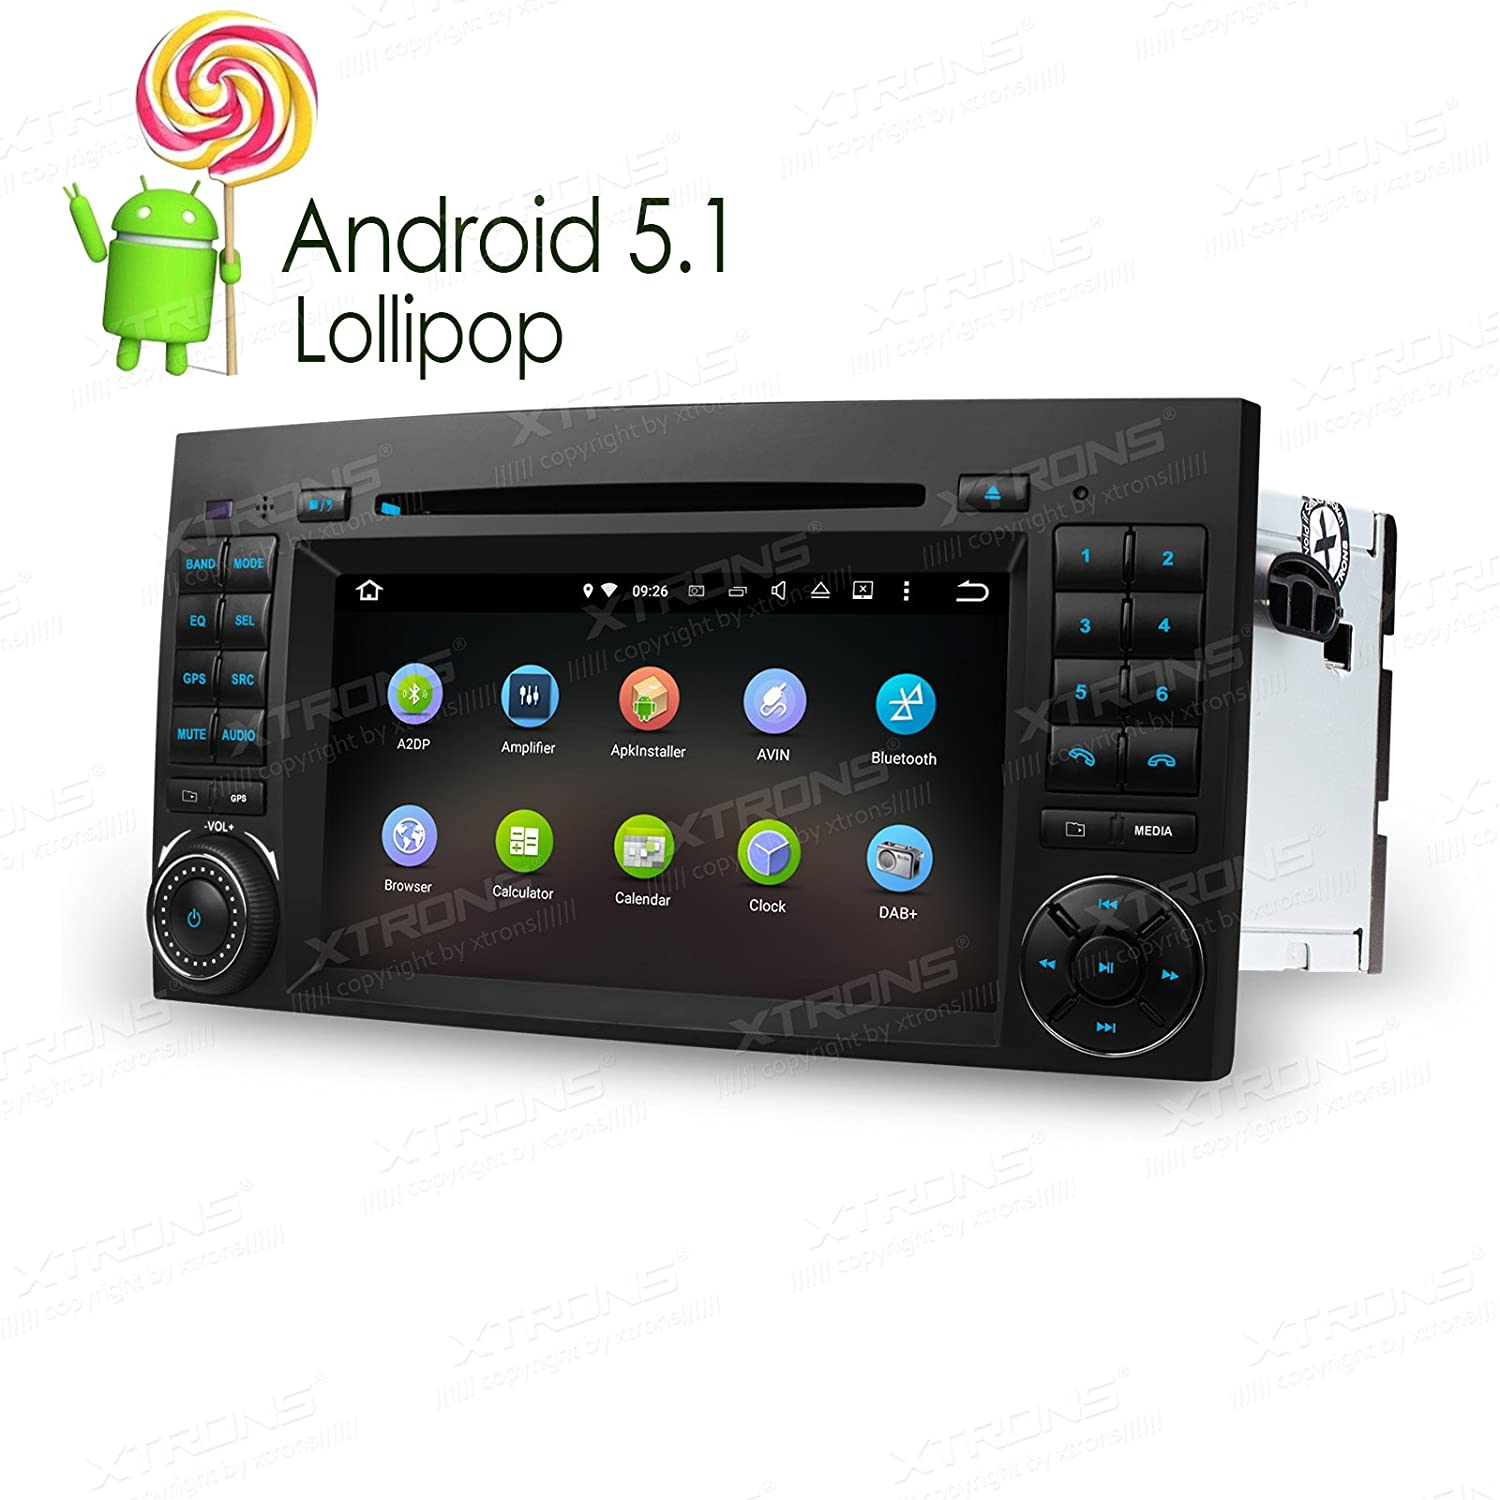 ... Car Stereo Radio DVD Player with Screen Mirroring Function & OBD2  Built-in DAB+ Tuner for Mercedes-Benz Sprinter B-W245: Cell Phones &  Accessories